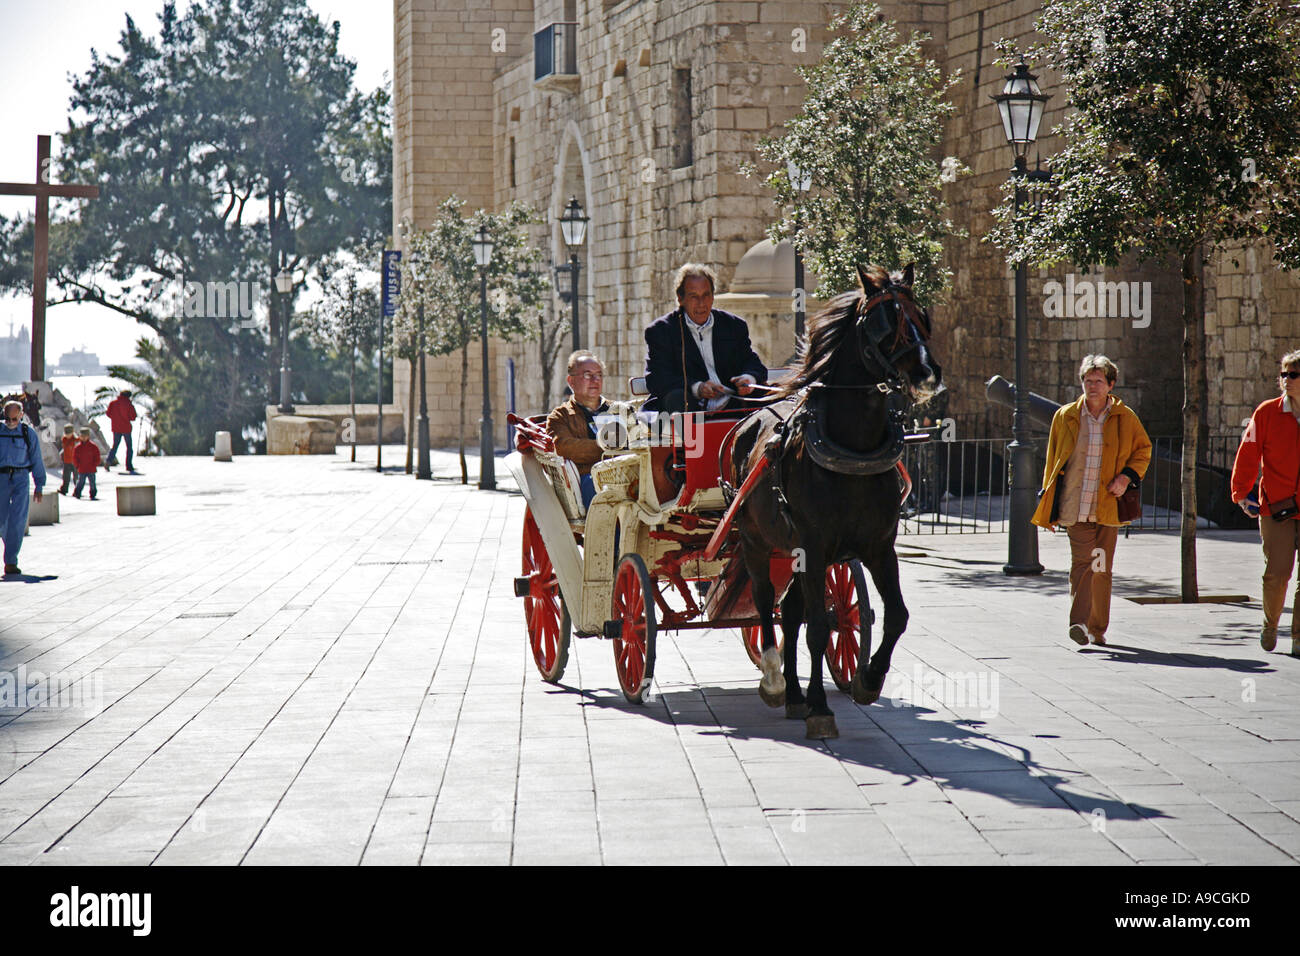 Tourist sightseeing from a pony and trap near La Seu the cathedral at Palma Mallorca - Stock Image